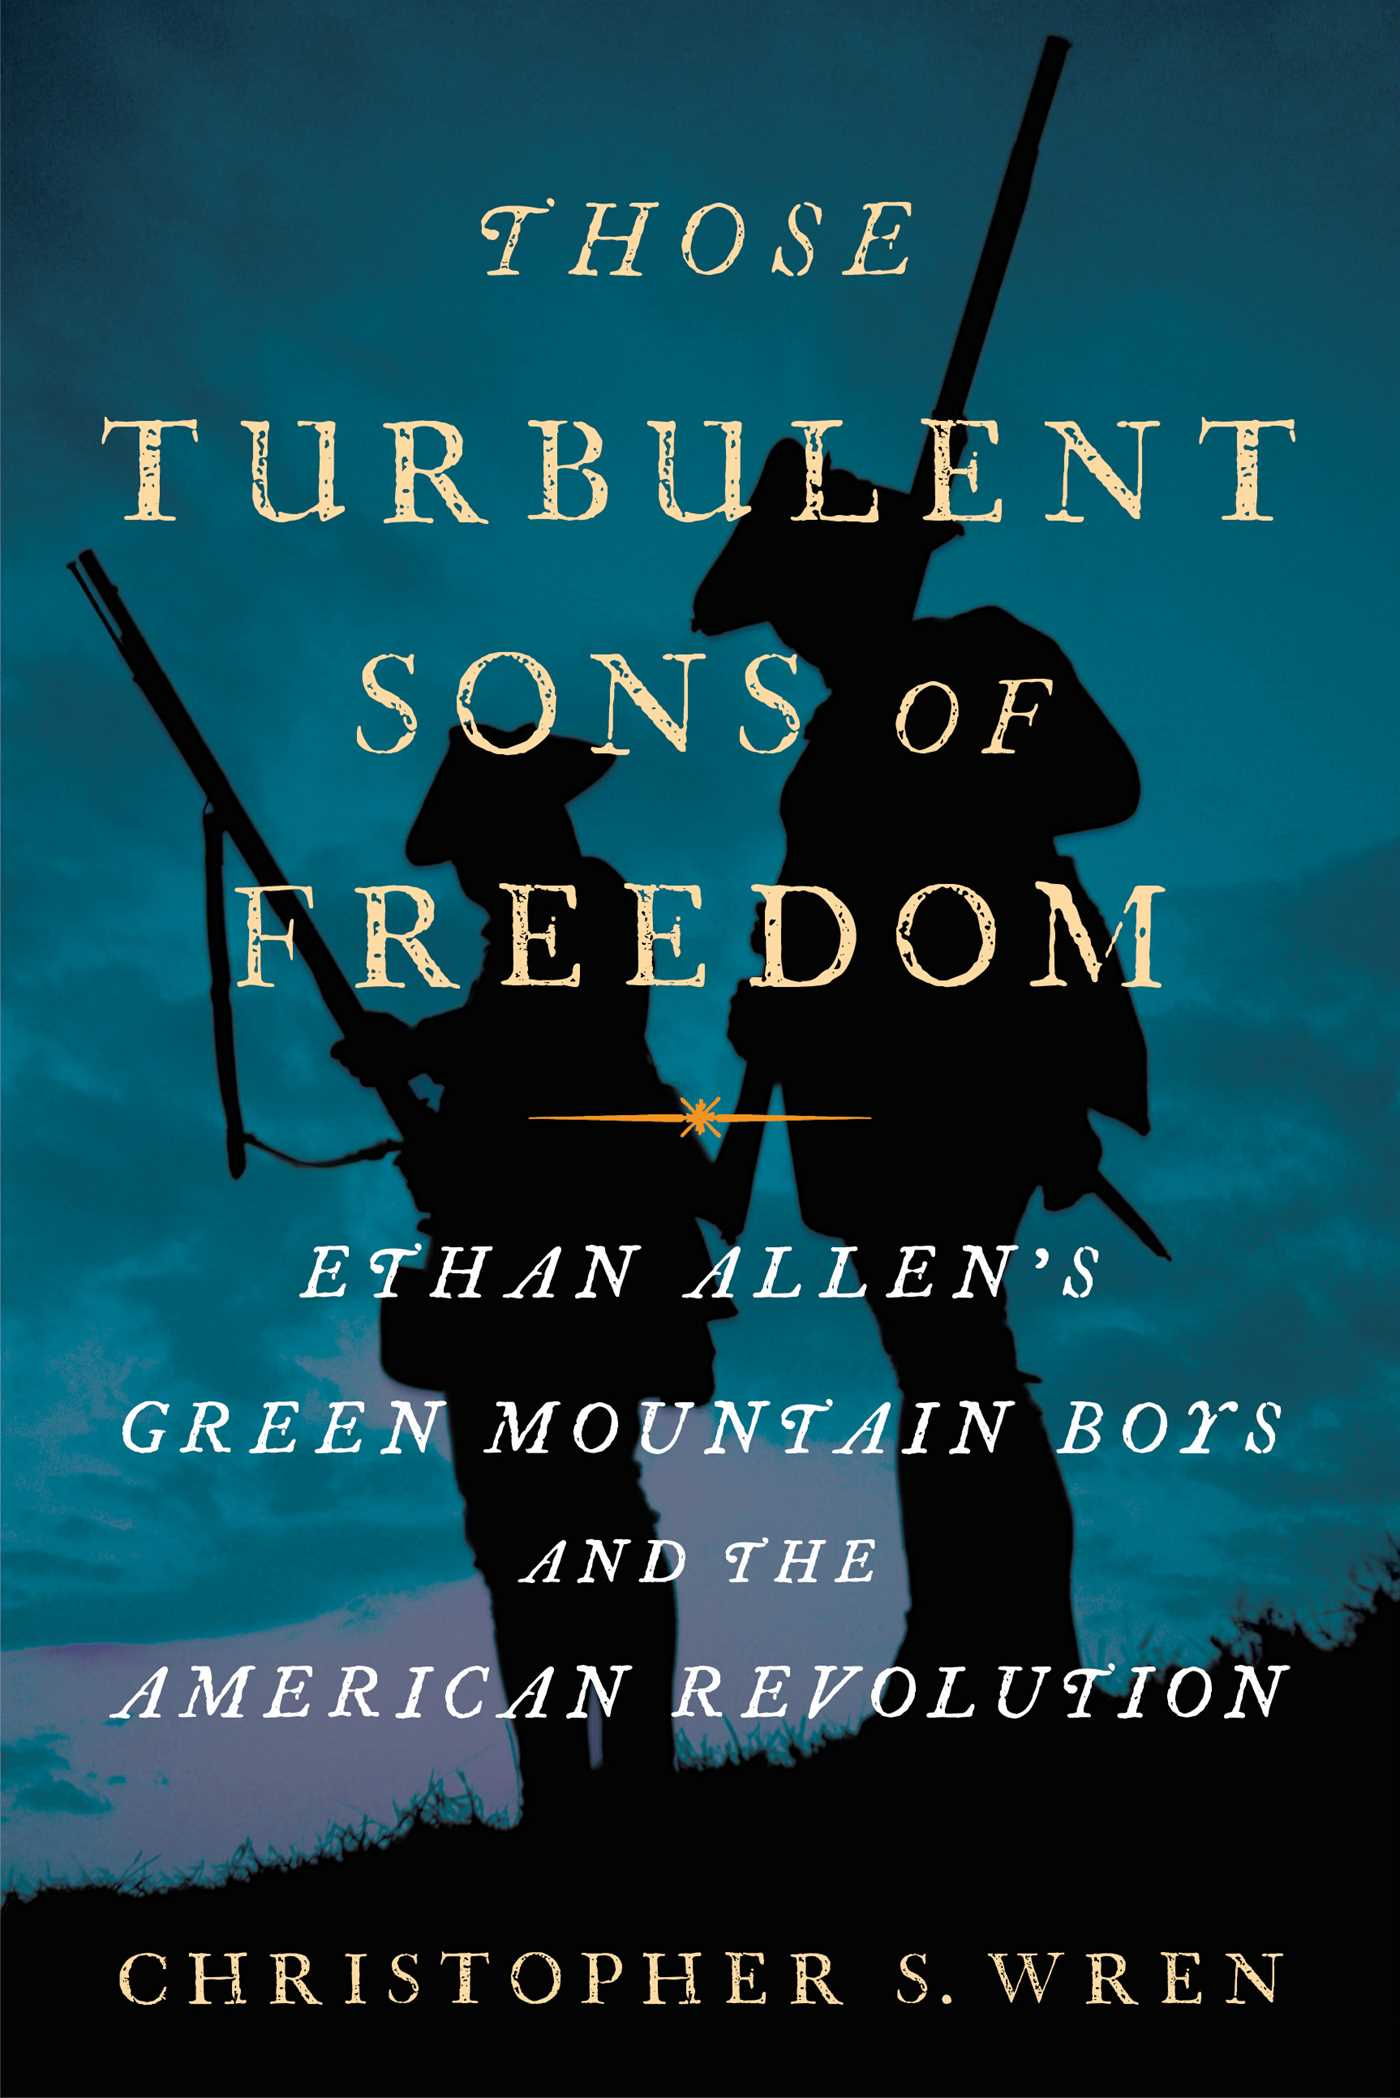 Those turbulent sons of freedom 9781416599555 hr